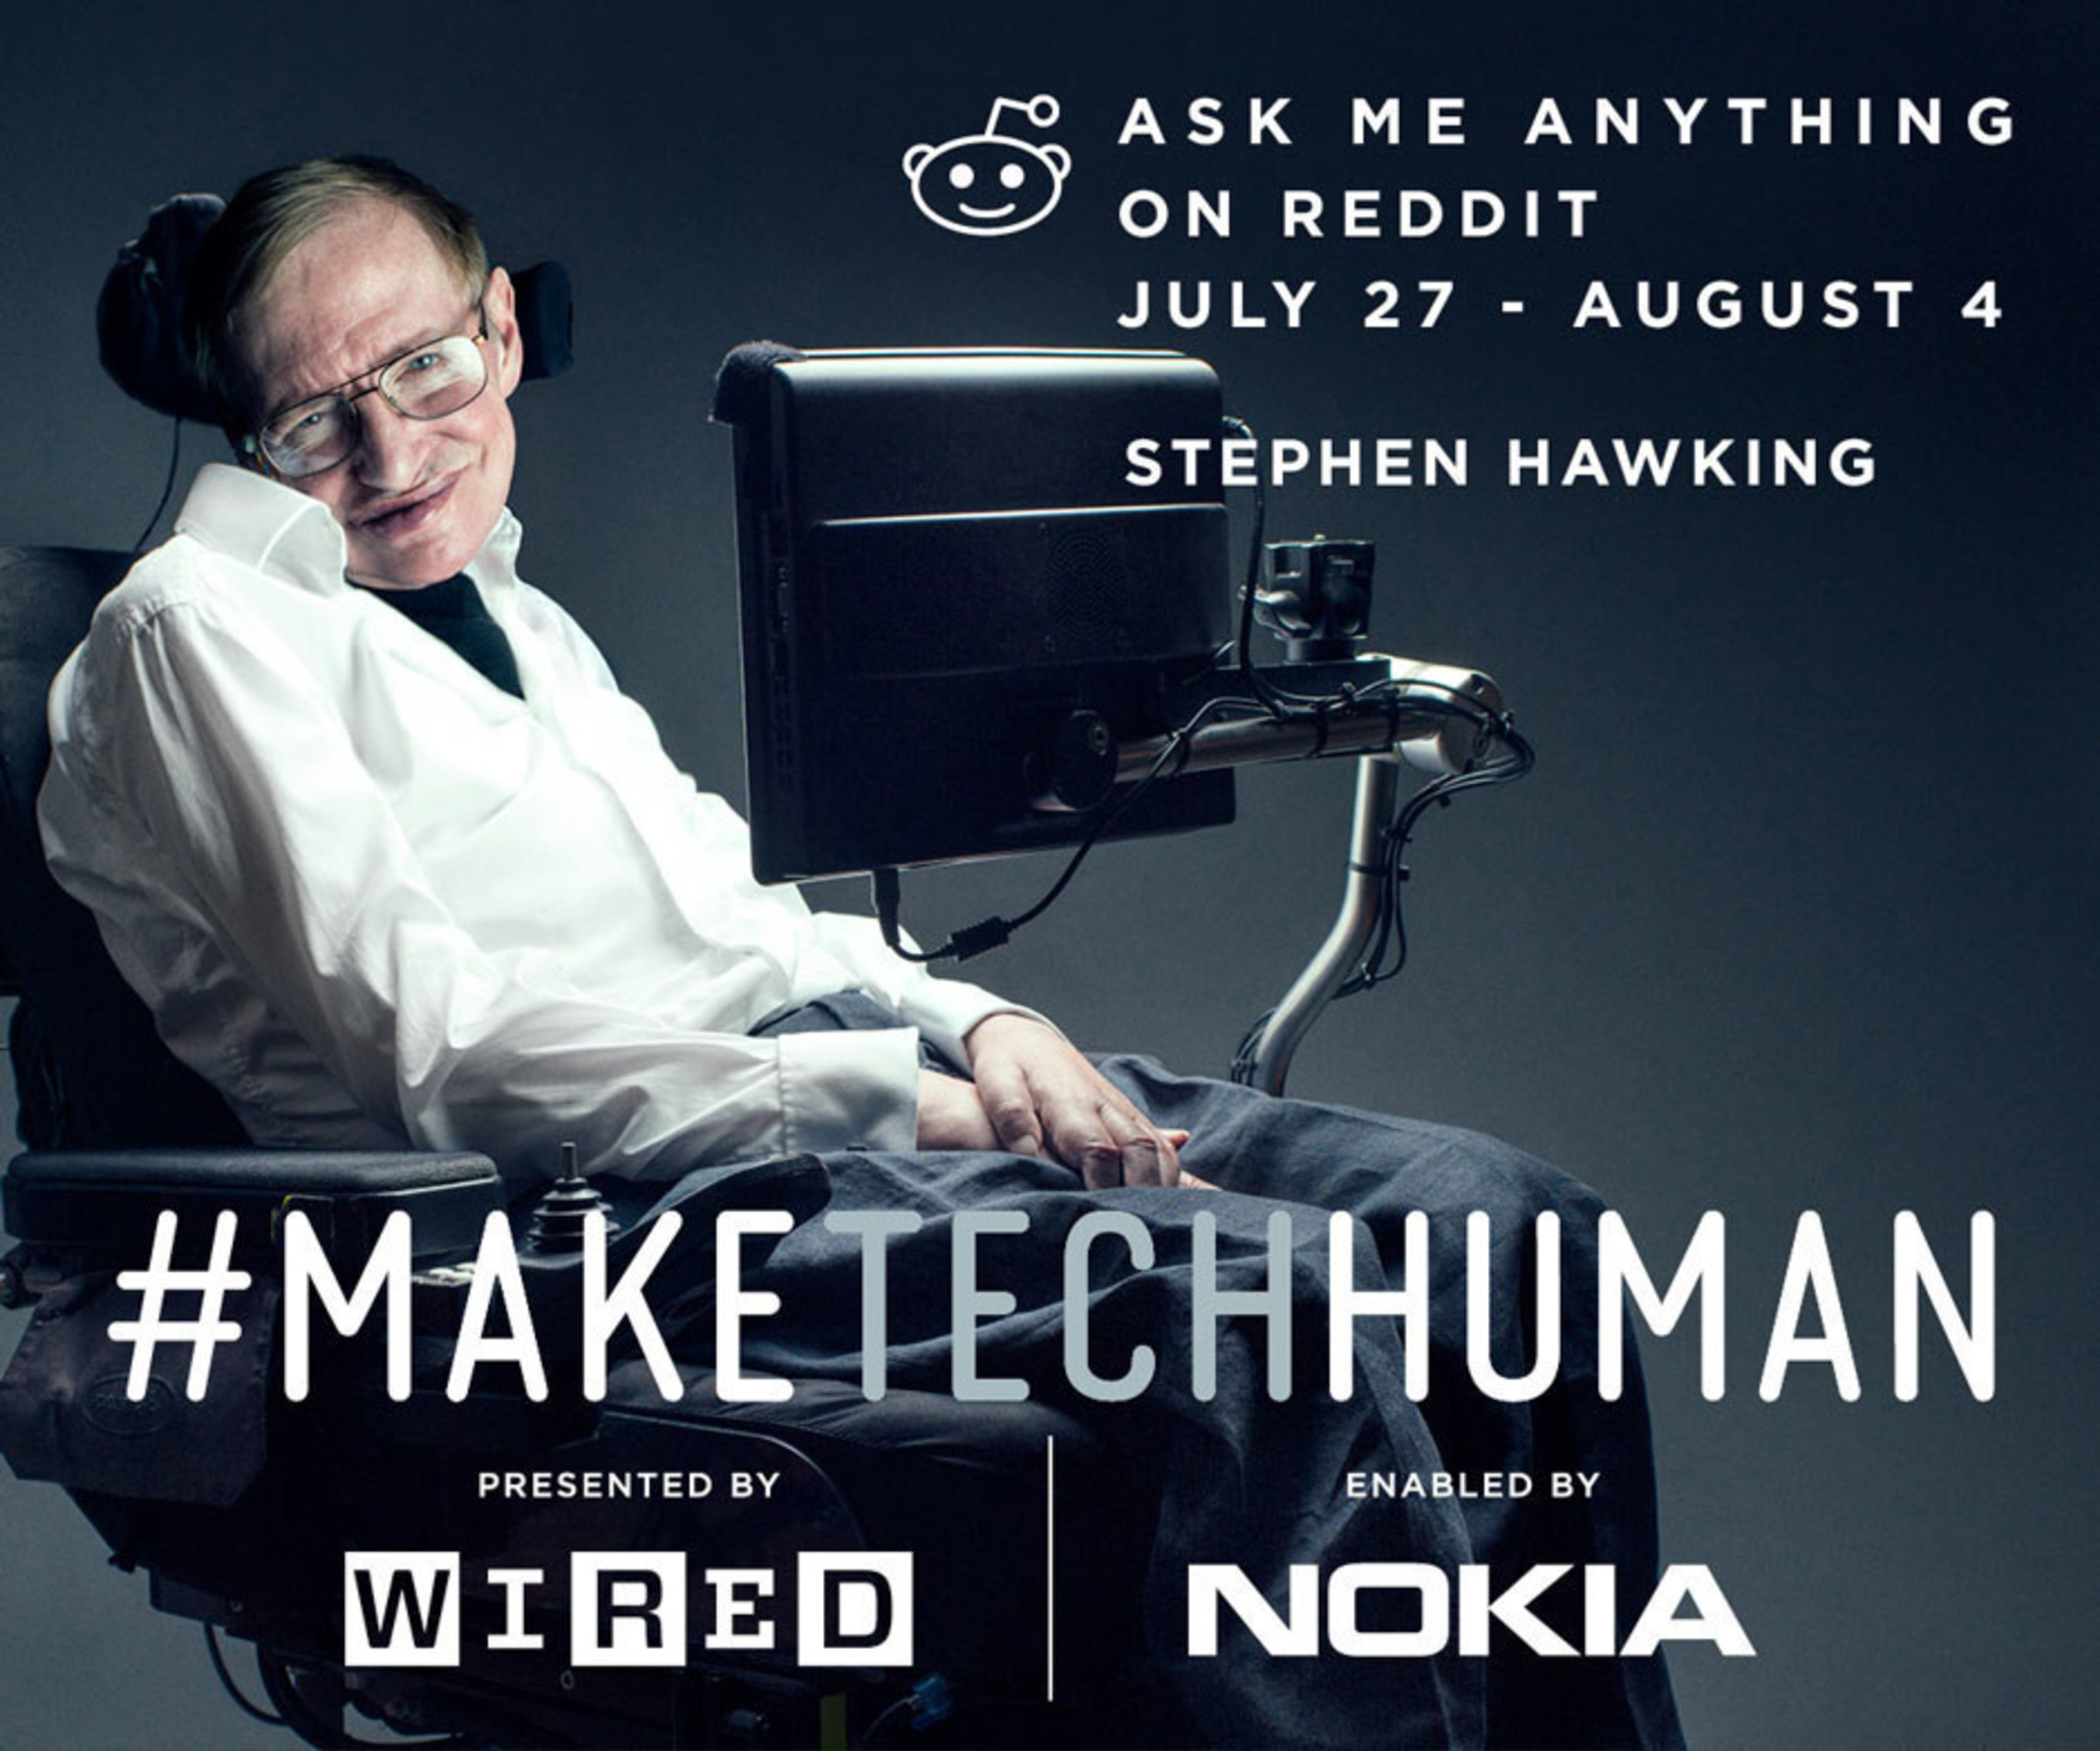 Nokia & WIRED Announce First Ever reddit AMA With Stephen Hawking; Continue #maketechhuman Conversation With The Iconic Theoretical Physicist